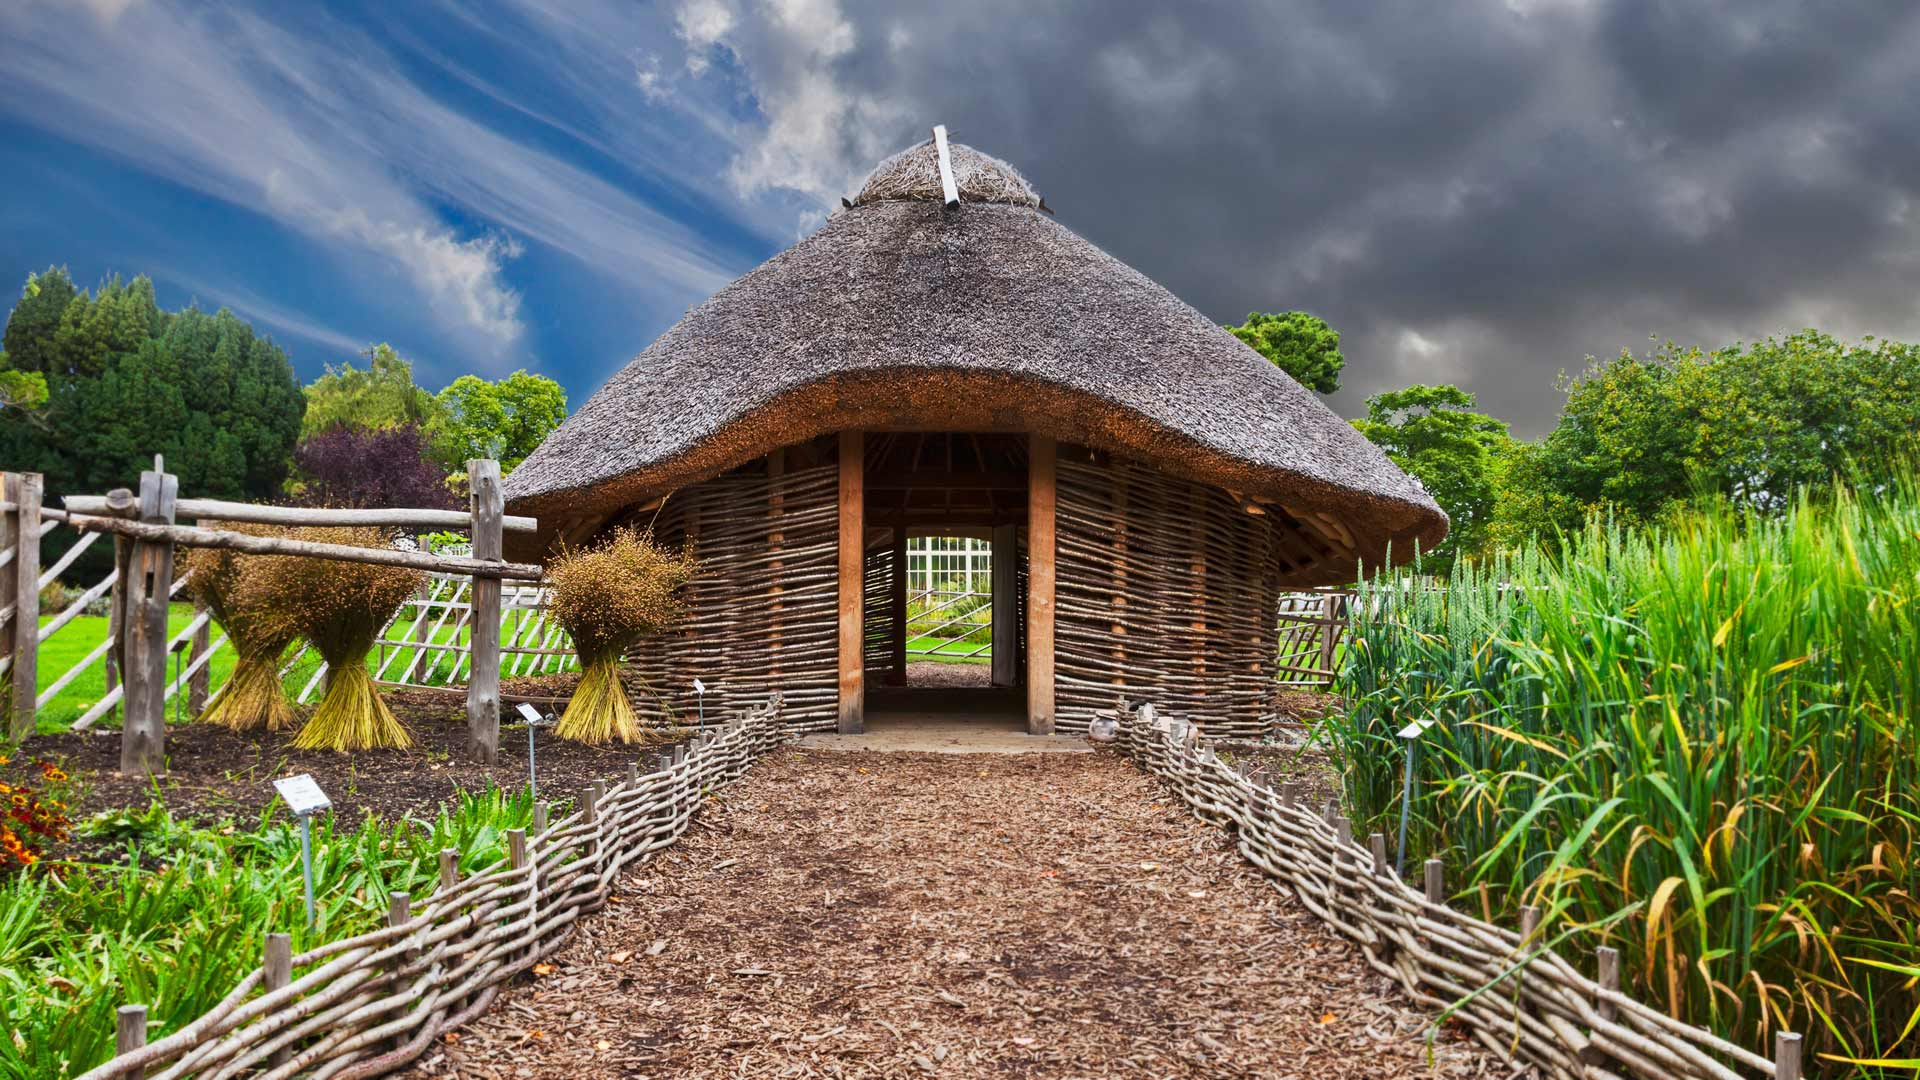 Replica of a Viking home in Dublin National Botanic Gardens, Ireland (© George Munday/plainpicture)